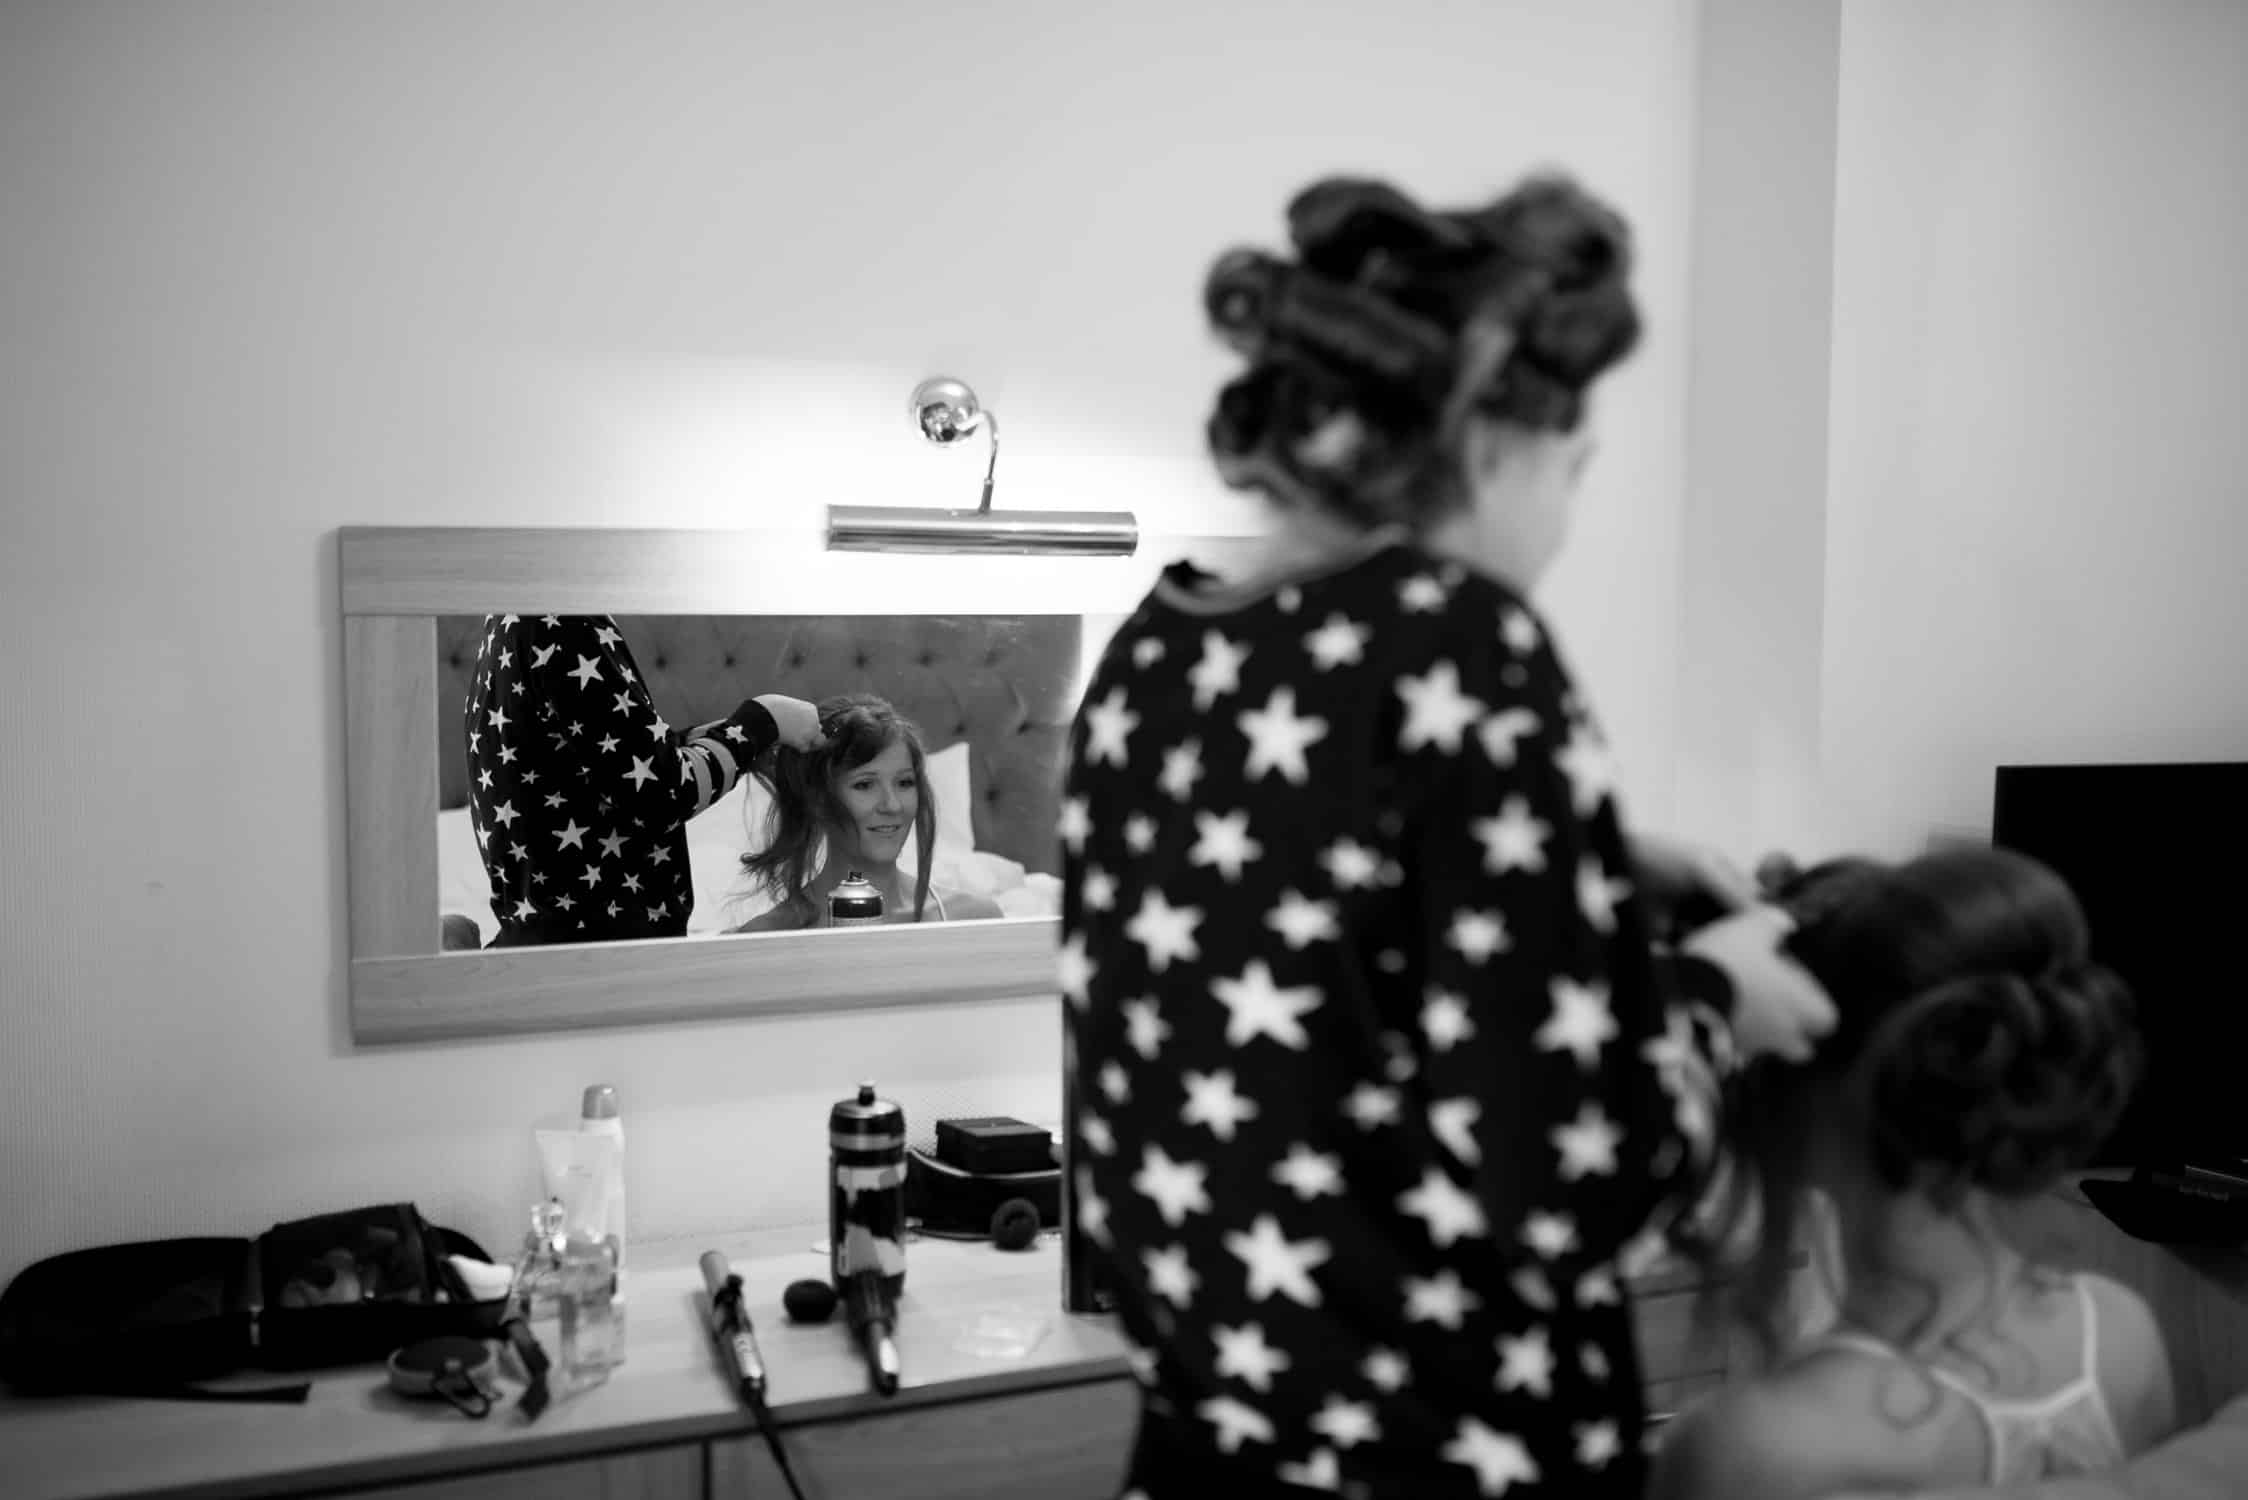 black and white image of bride's reflection in the mirror while having her hair done